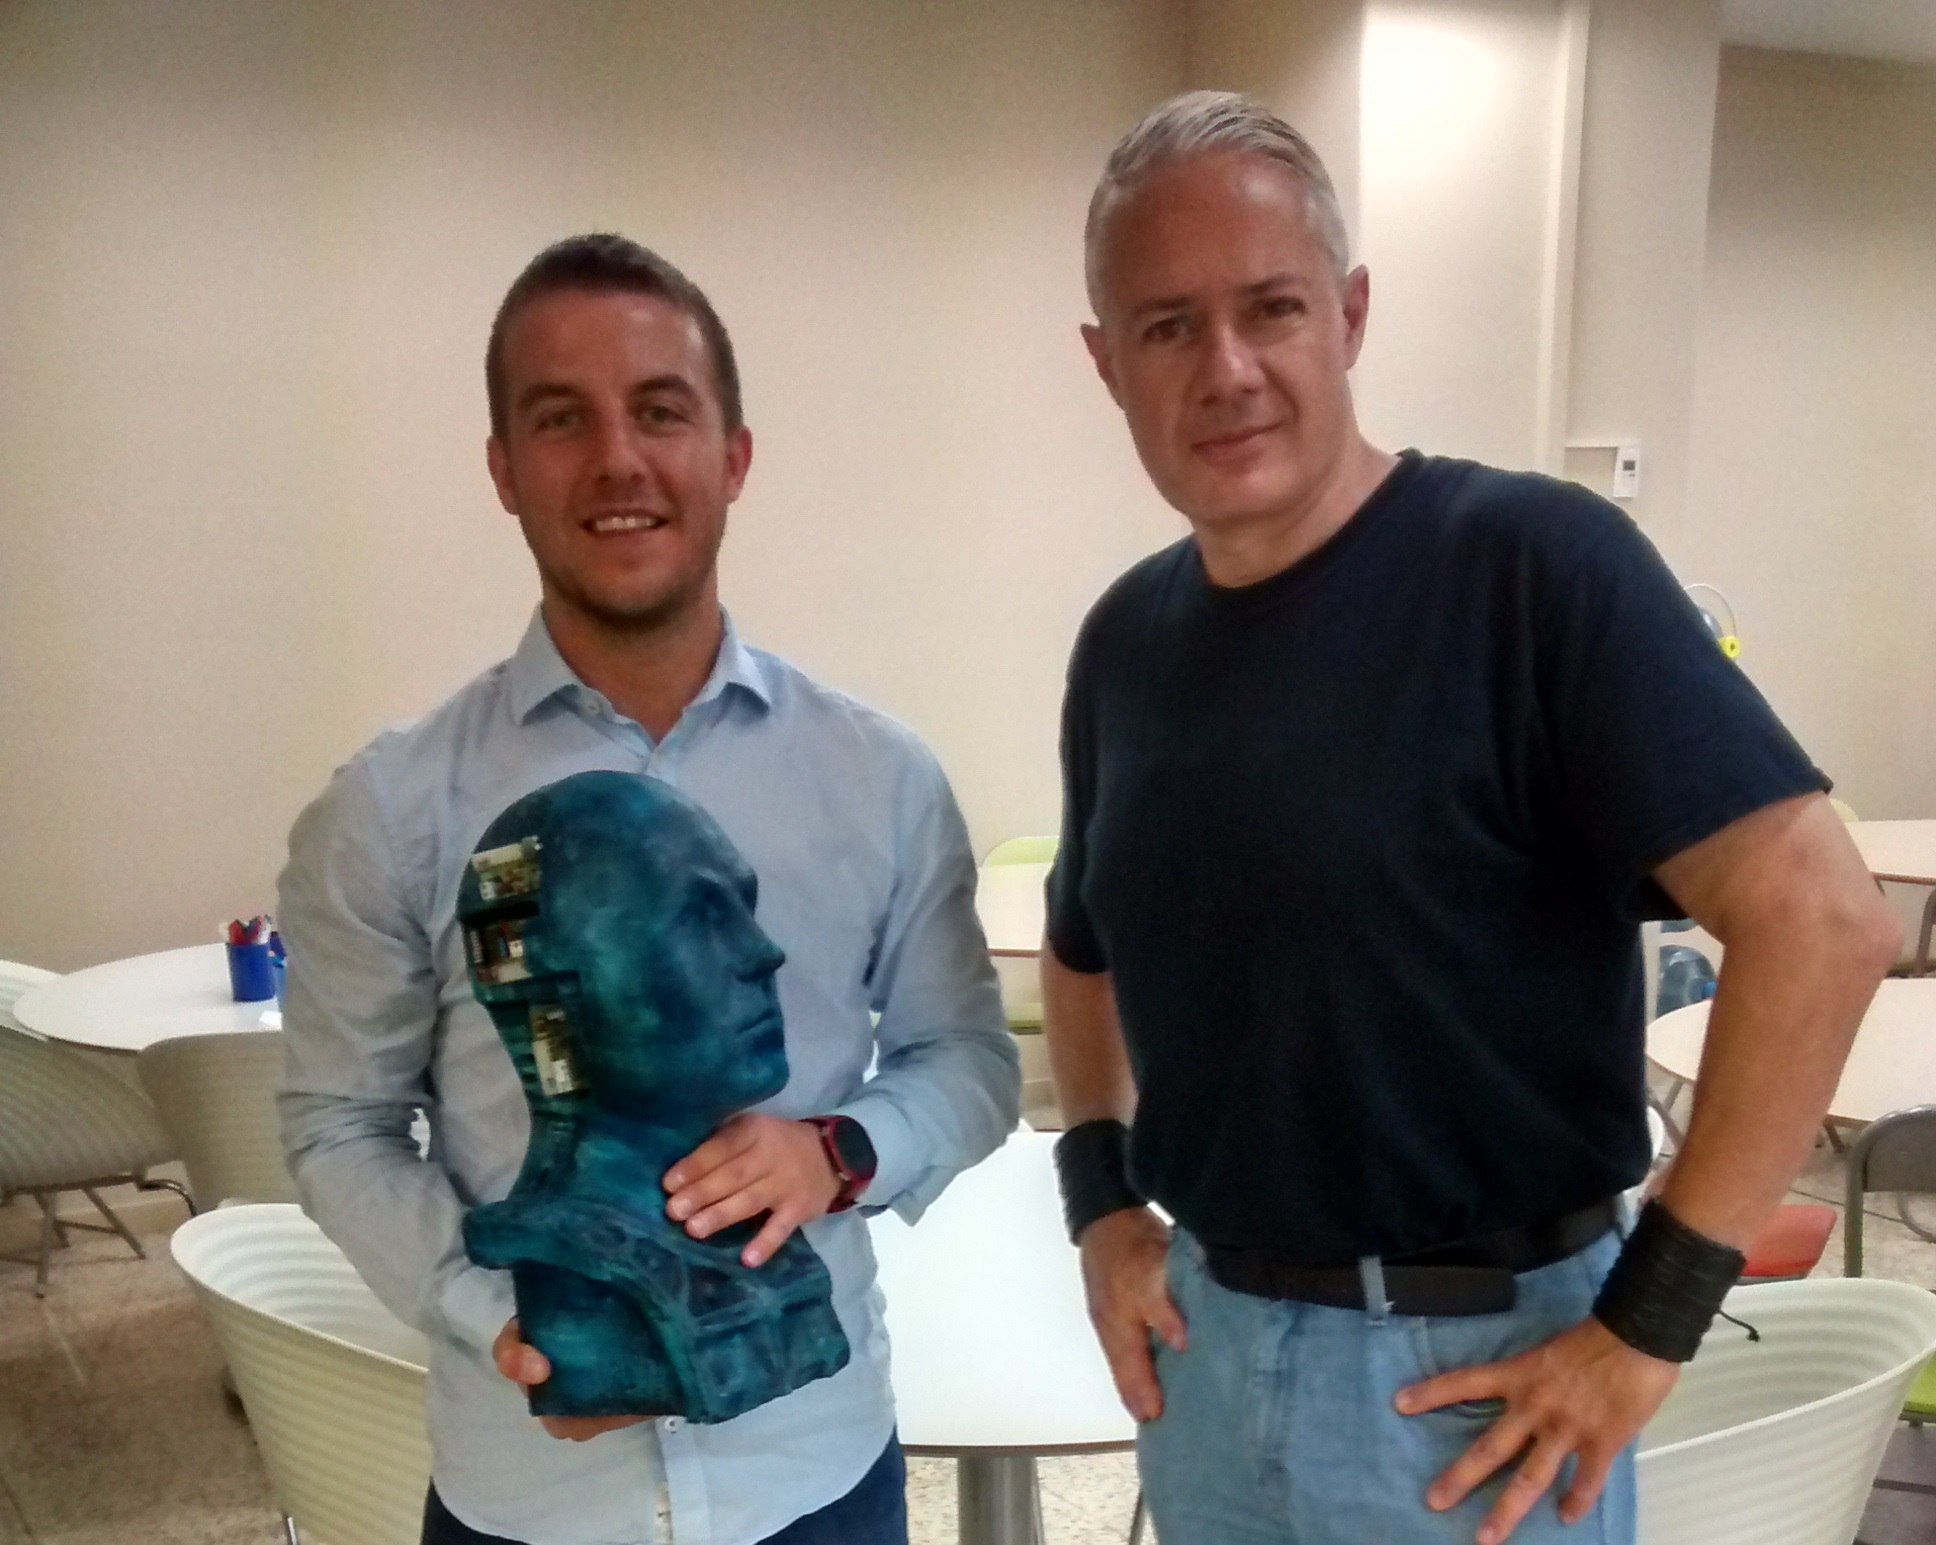 Art and robotics: CTO Luca Marchionni with the artist Rogelio Fernández.